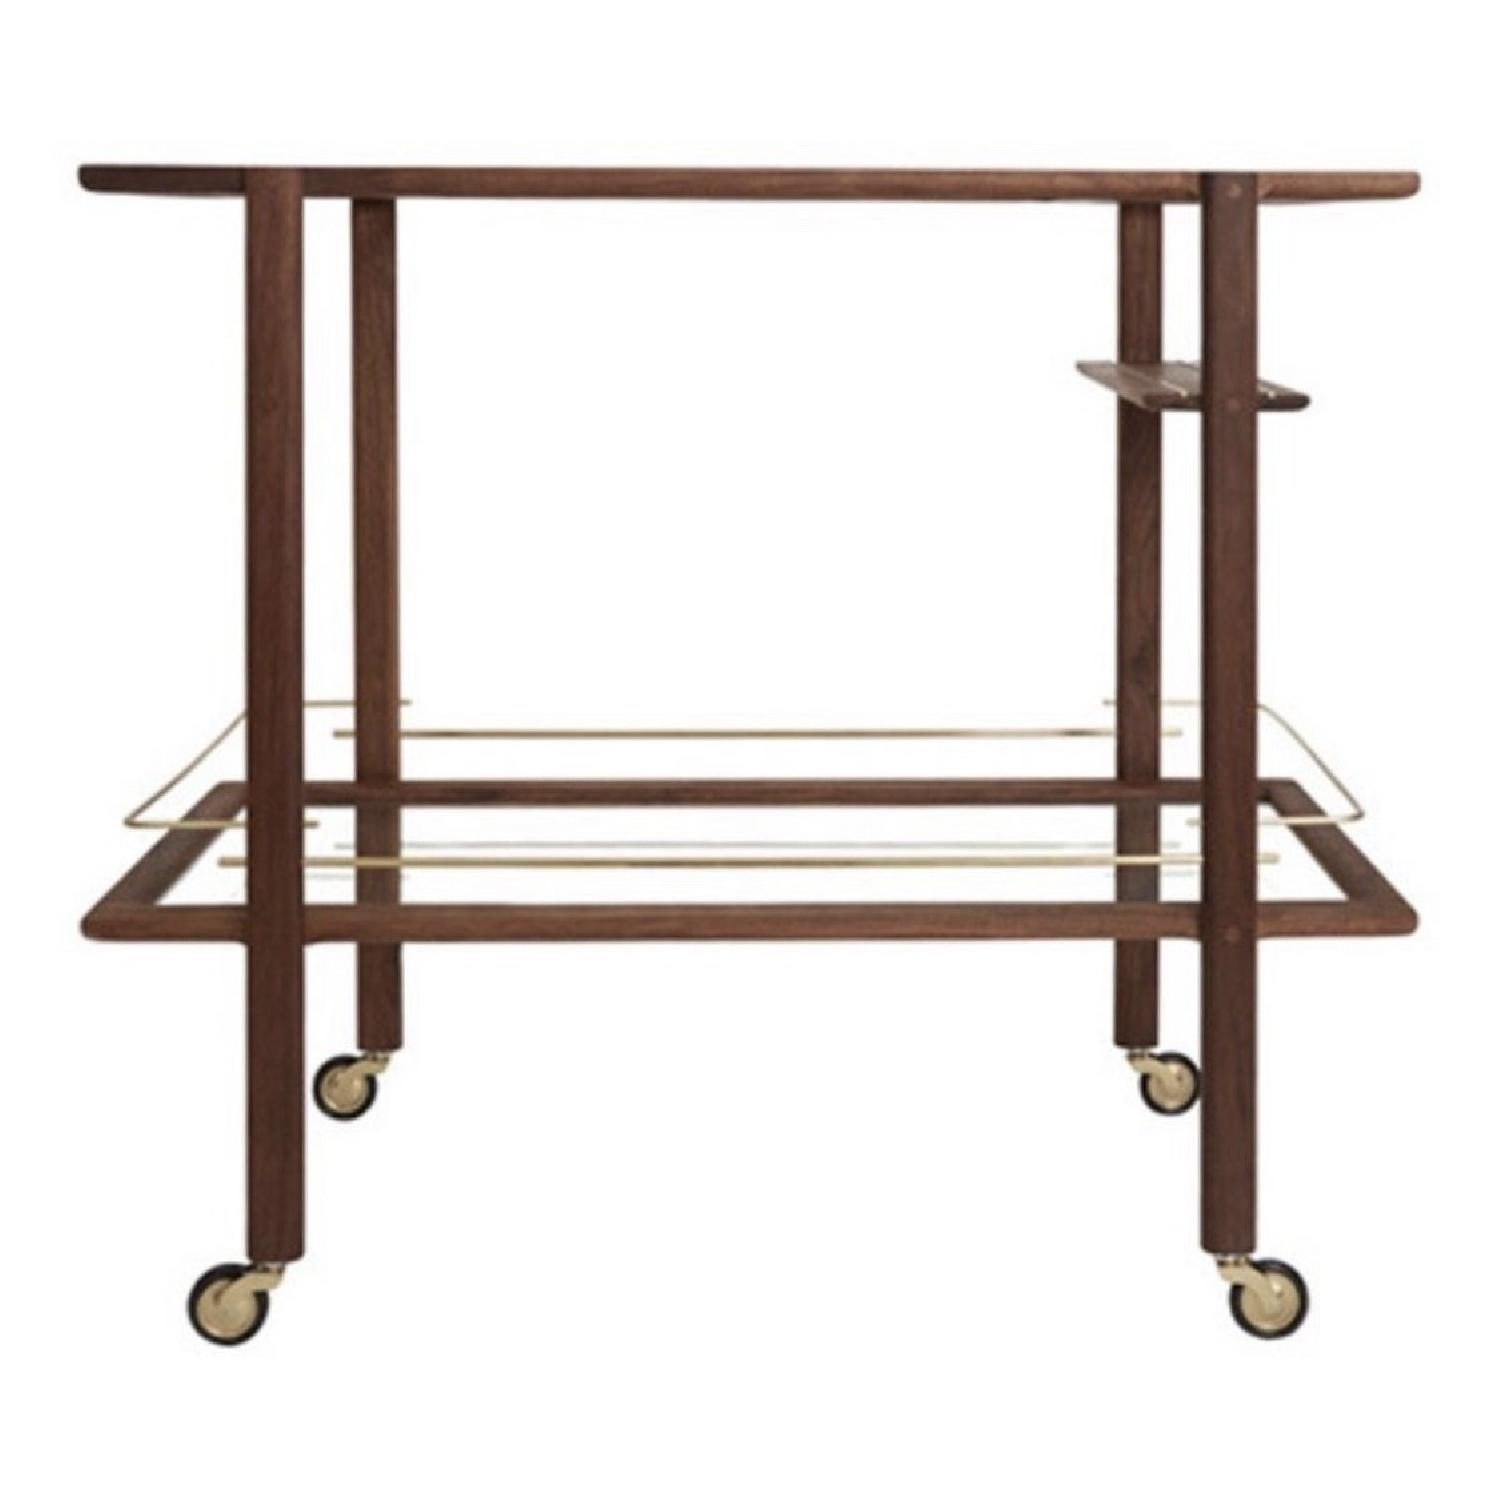 Chris Earl Walnut & Brass Bar Cart